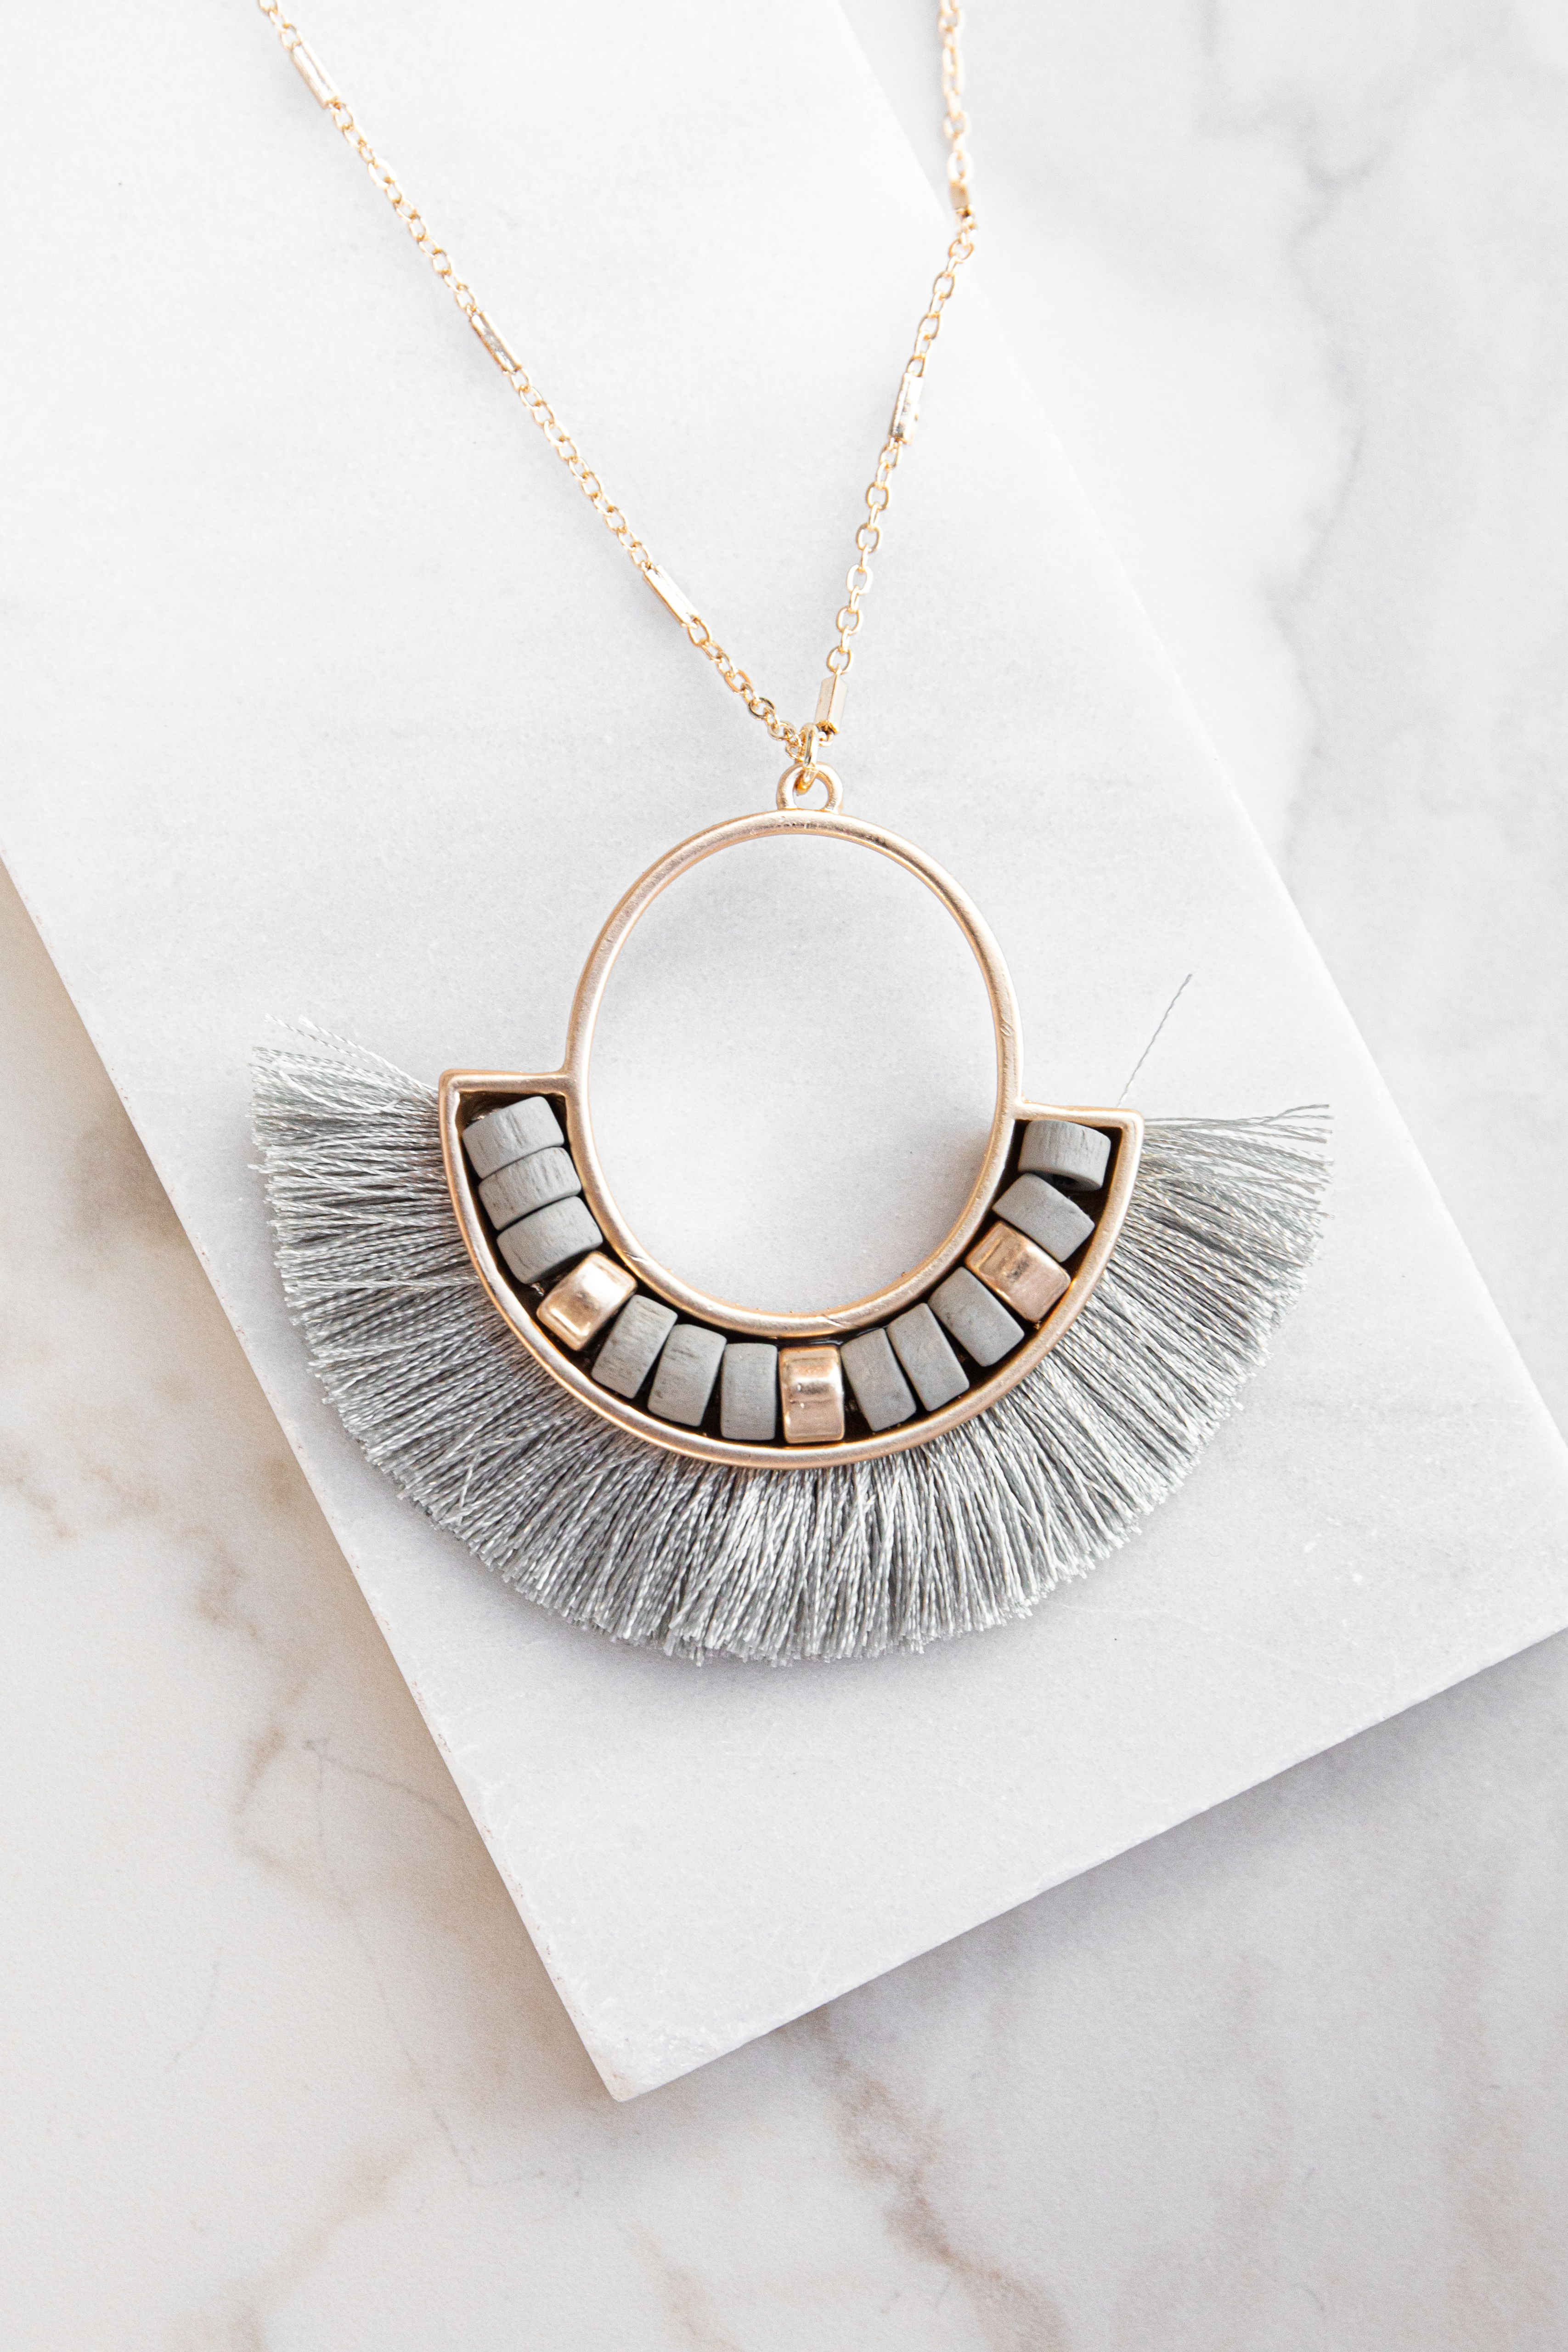 Gold Circle Pendant Long Necklace with Grey Tassel Details